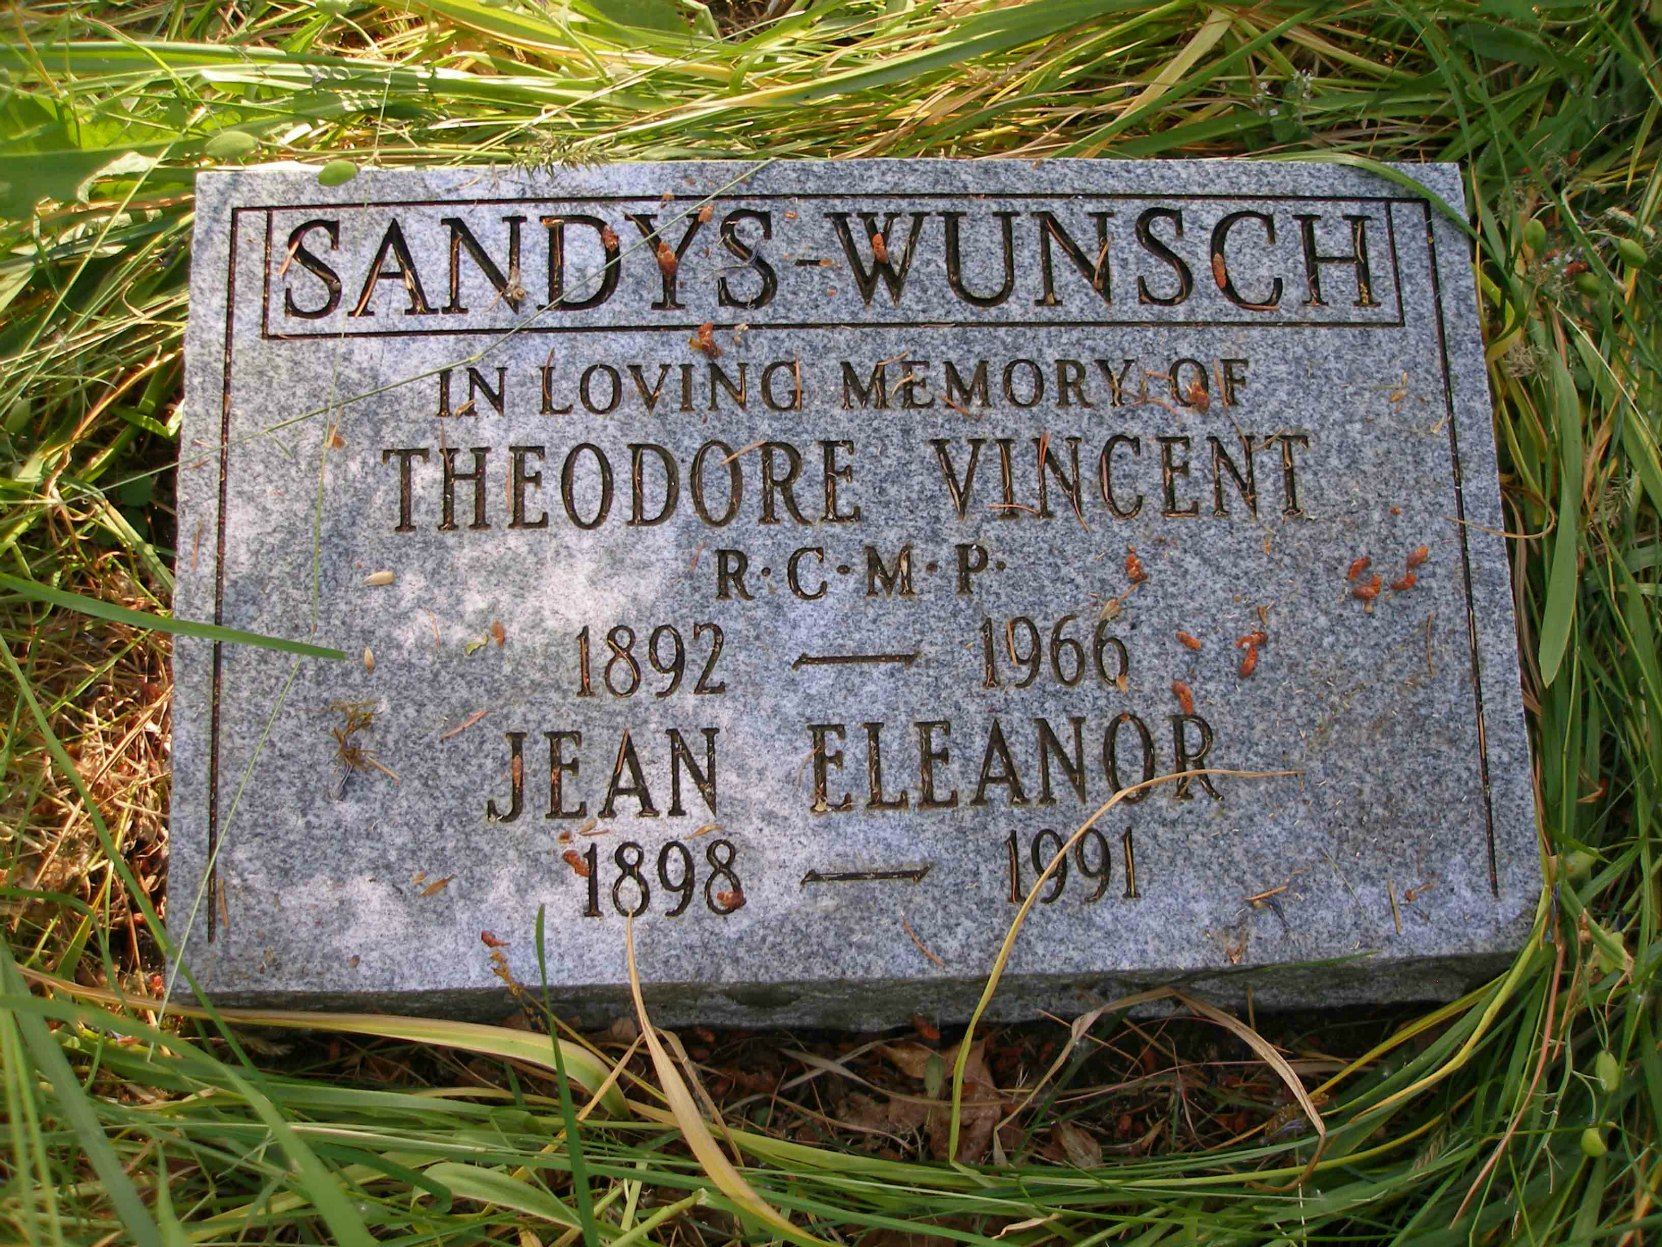 Theodore Vincent Sandys-Wunsch grave, St. Peter's Quamichan Anglican Cemetery, North Cowichan, B.C.